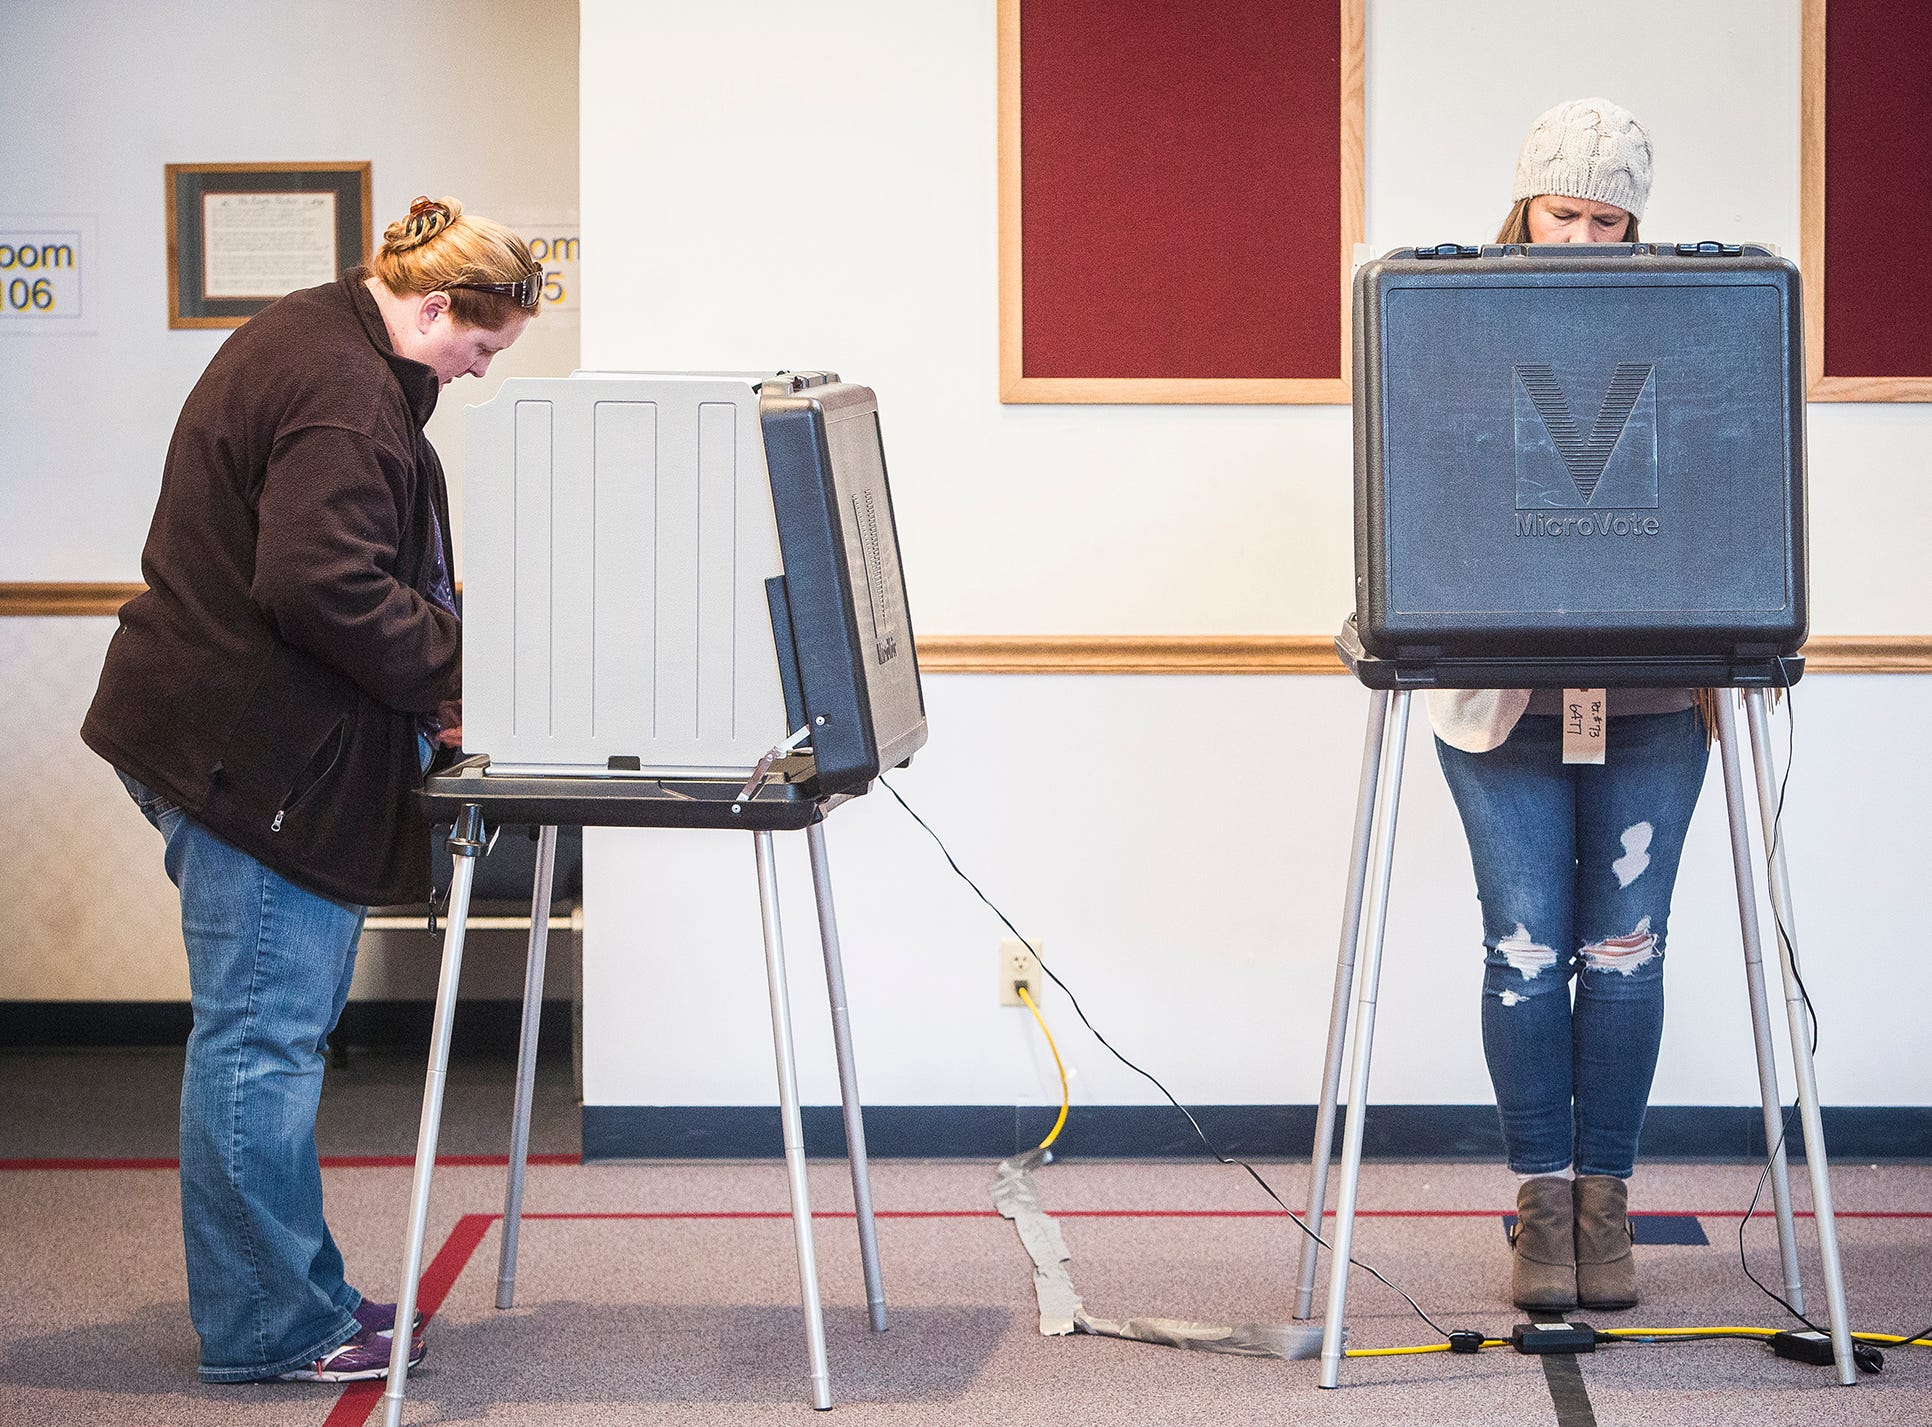 Voters from Precinct 59 and 73 cast their ballots at Cornerstone Brethren Church on Cowan Road Tuesday.